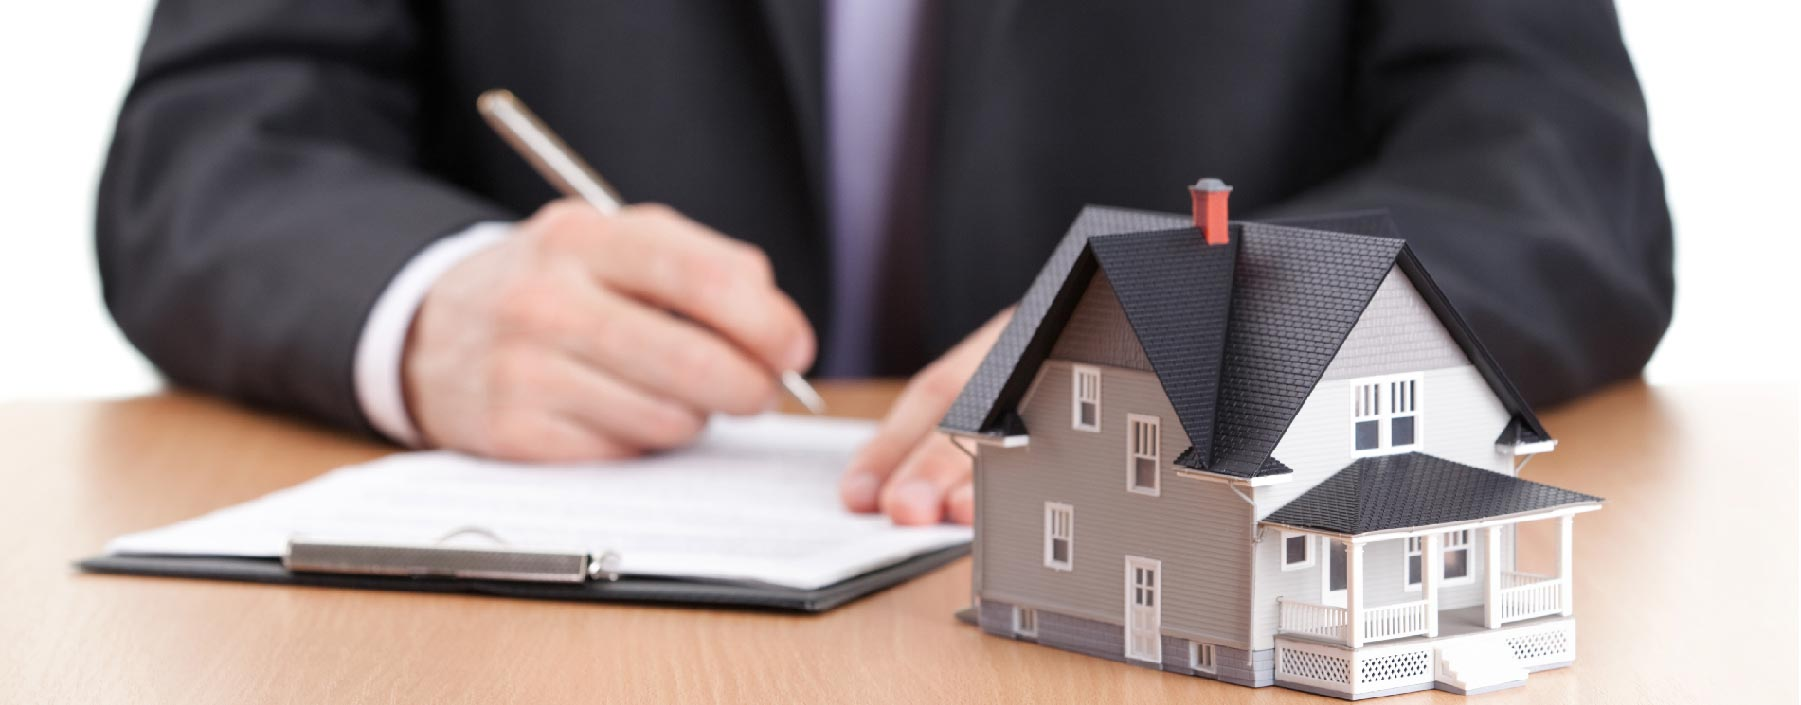 How Mortgage Refinance Rates Help?